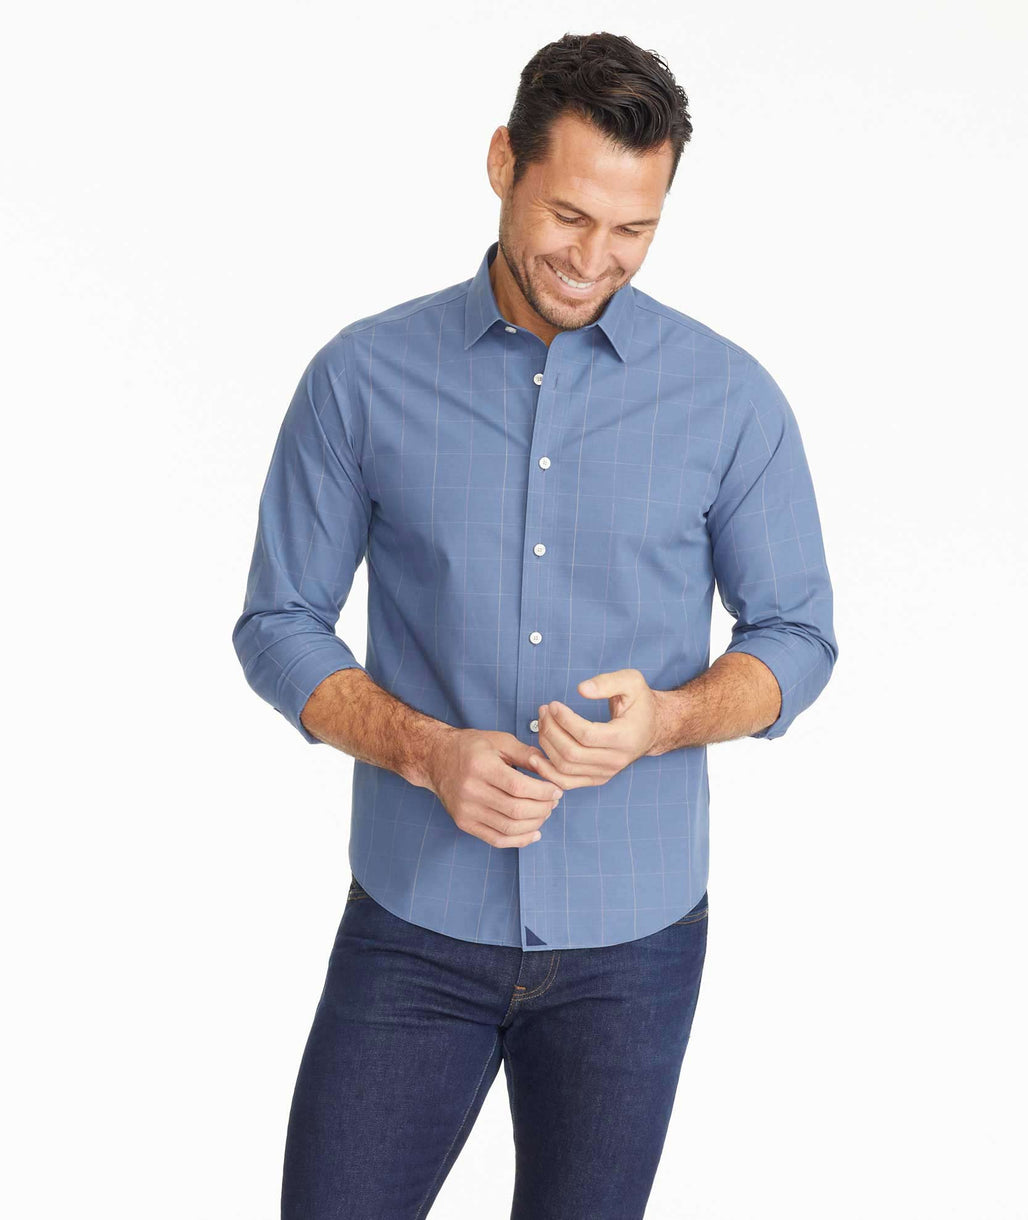 Model wearing a Wrinkle-Free Baracci Shirt